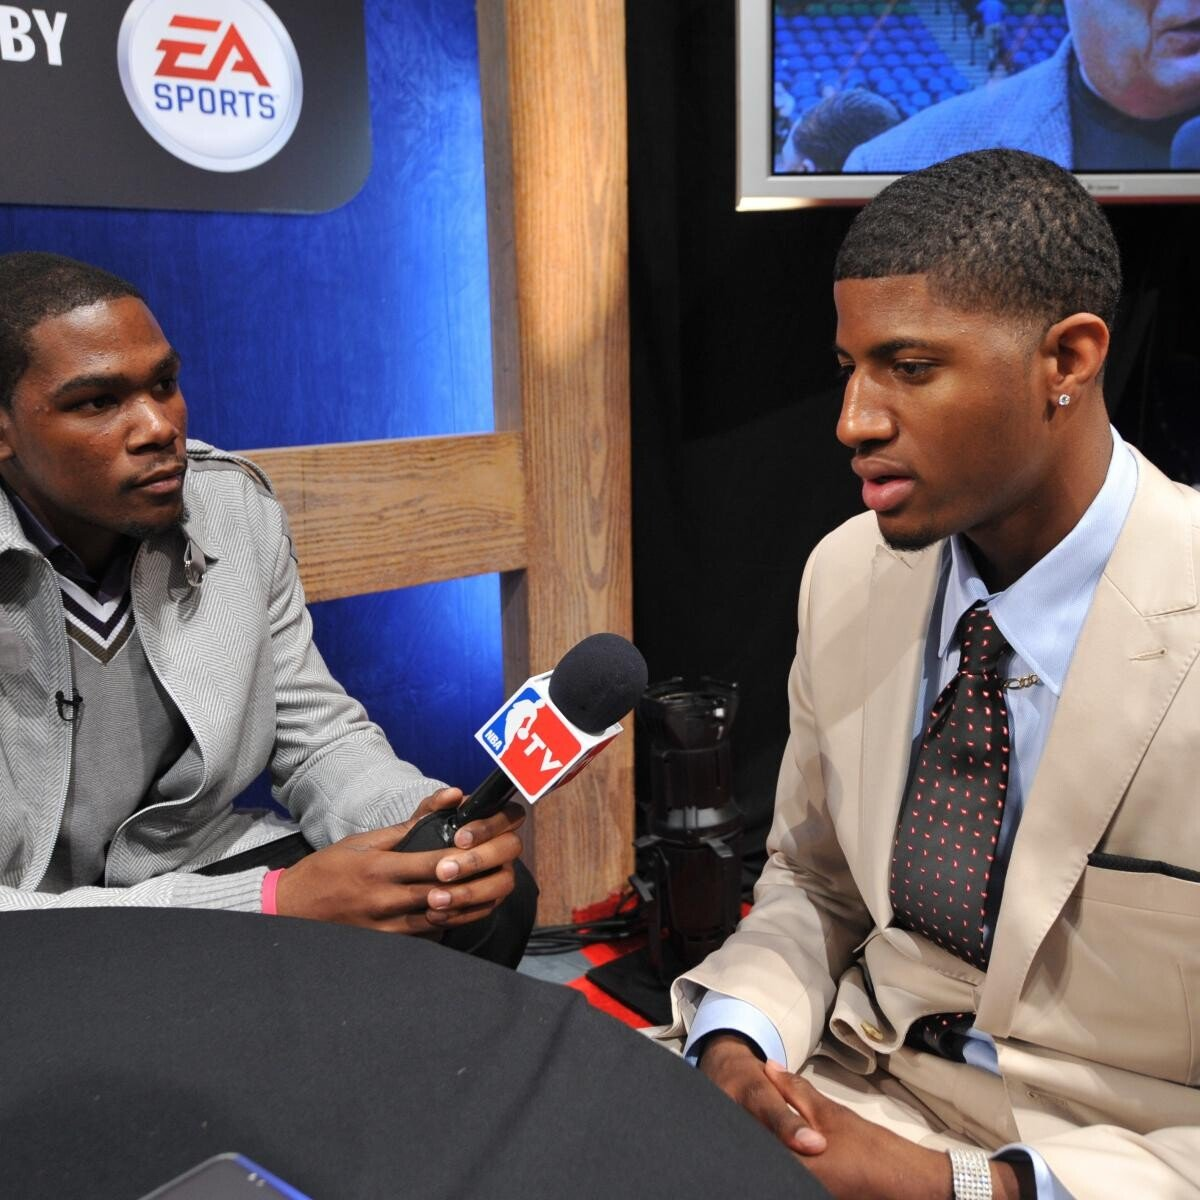 hi-res-102387961-kevin-durant-of-the-oklahoma-city-thunder-interviews_crop_exact.jpg ???: 에이스가 48분 뛰는건 효율적인게 아니에요